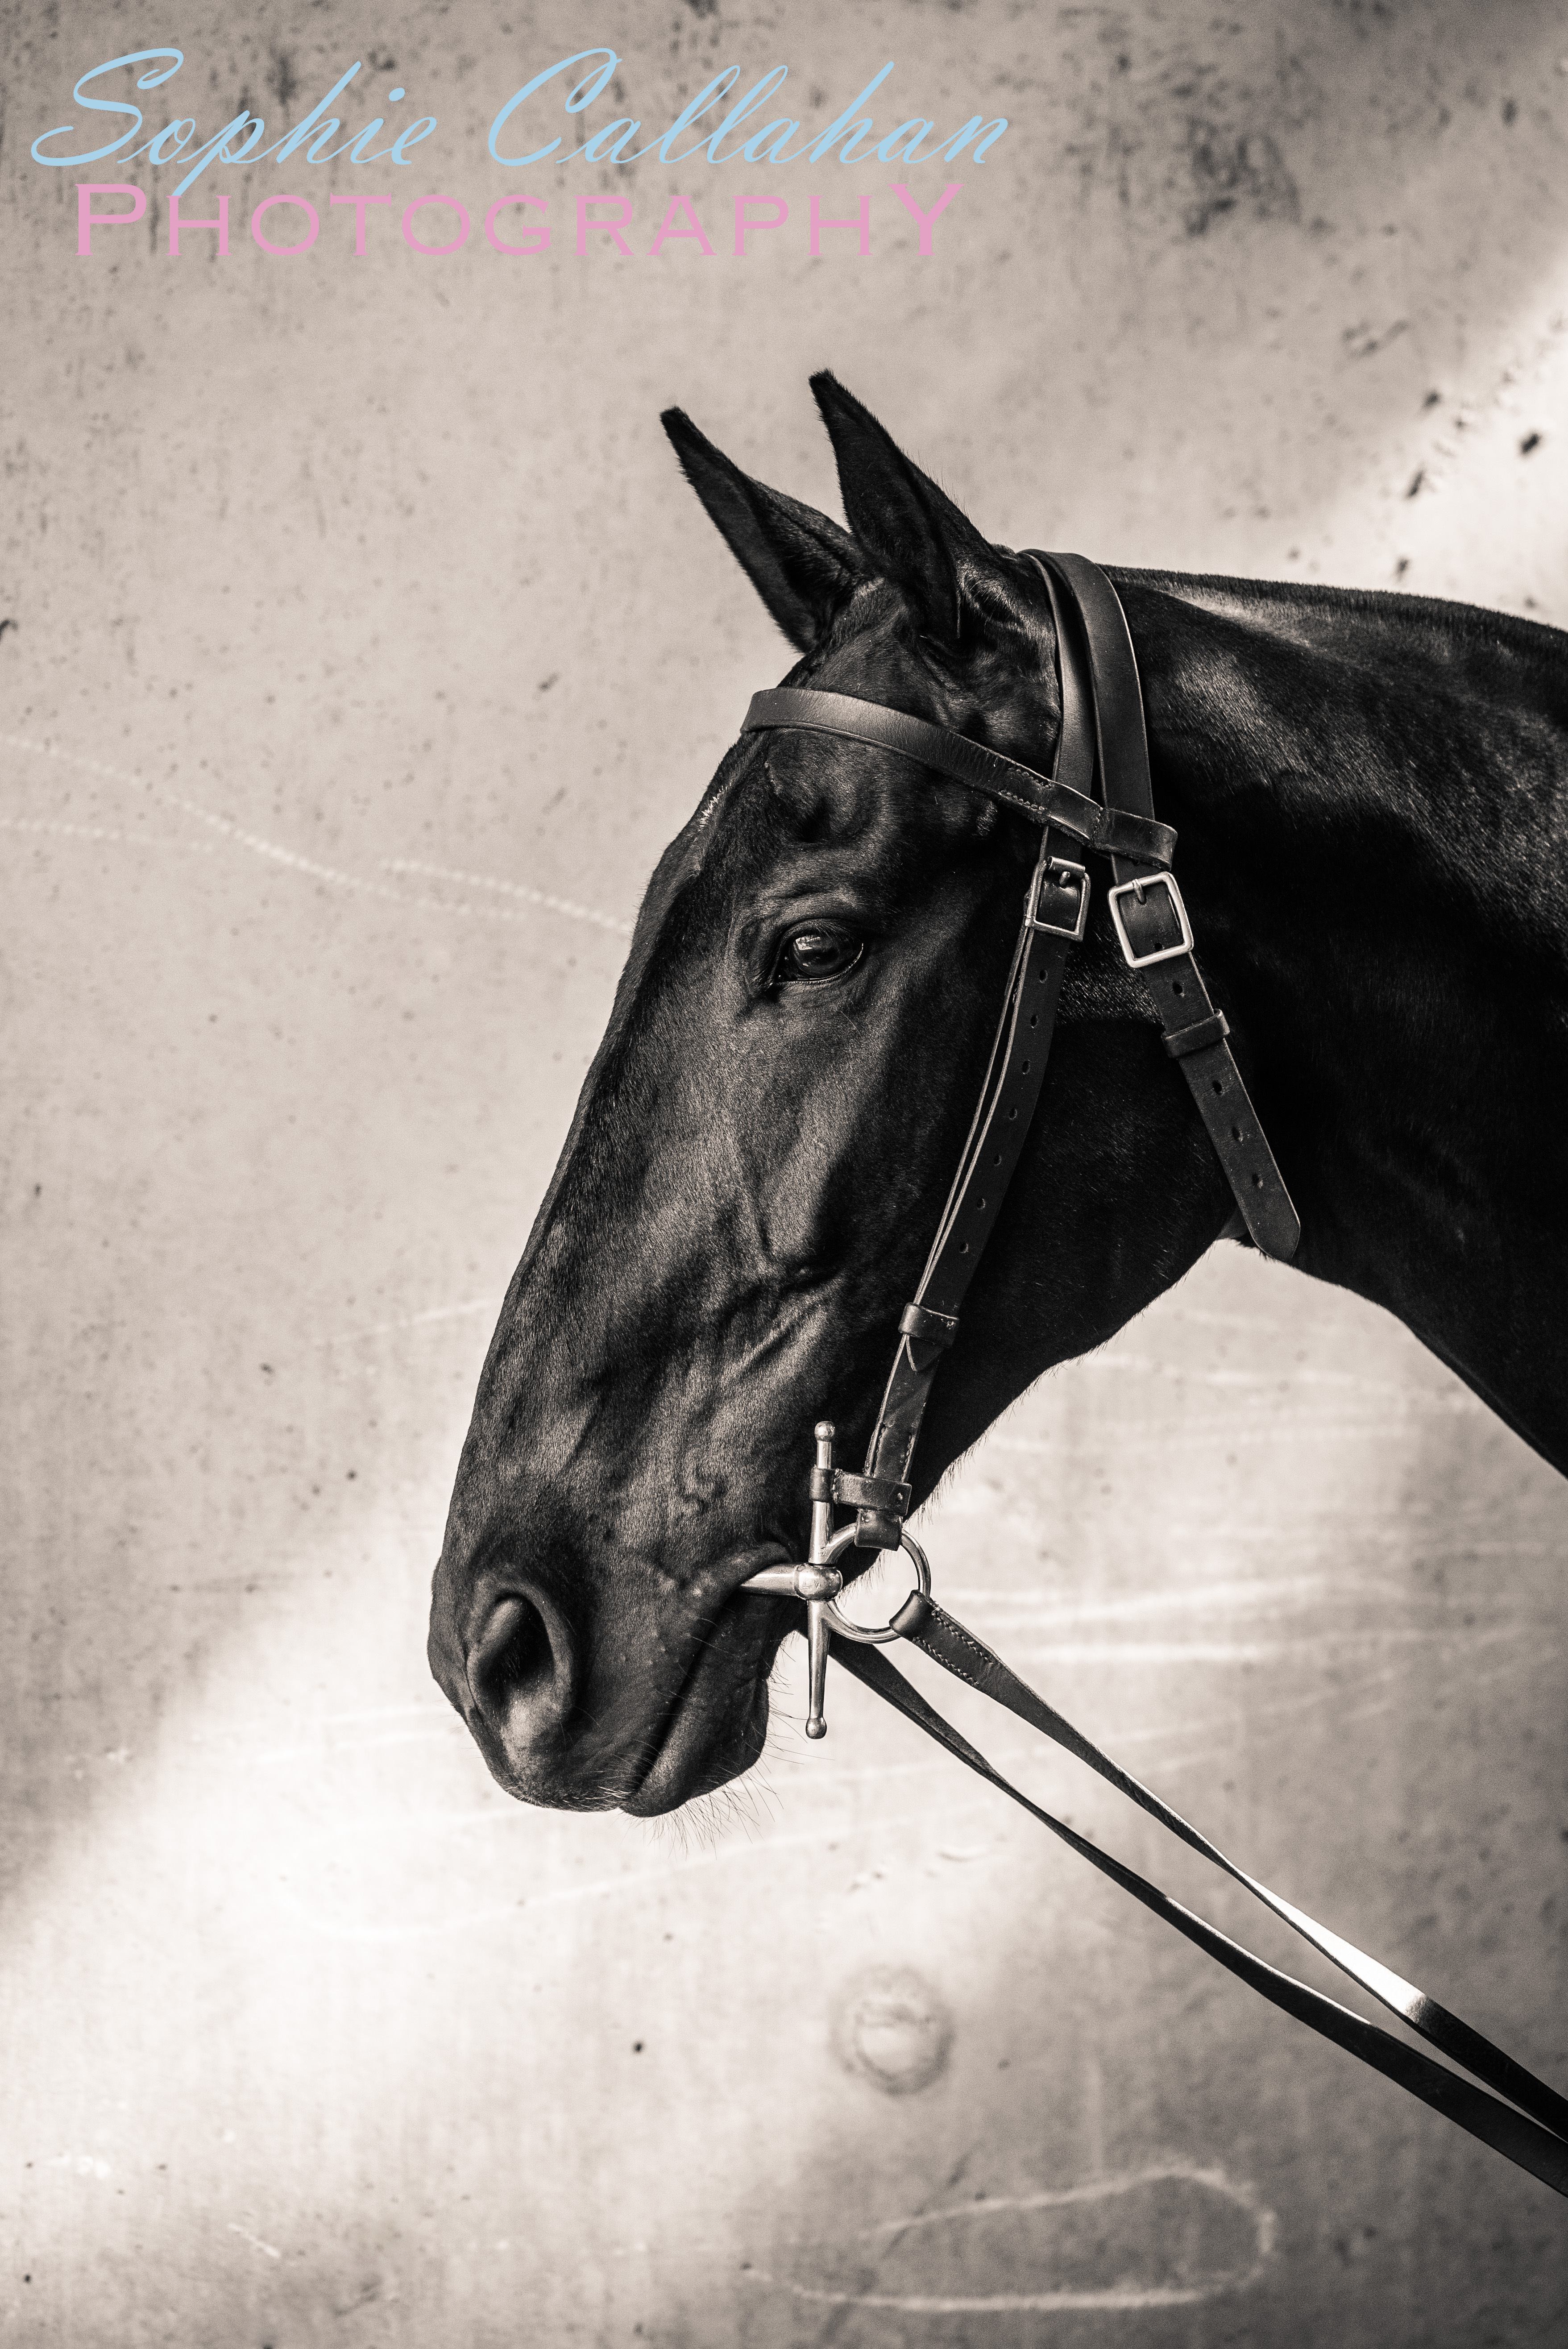 Kings Troop Royal Horse Artillery, by Specialist UK Equine Portrait Photographer, Hertfordshire I via sophiecallahanblog.com I #equinephotography #photography #equineblogger